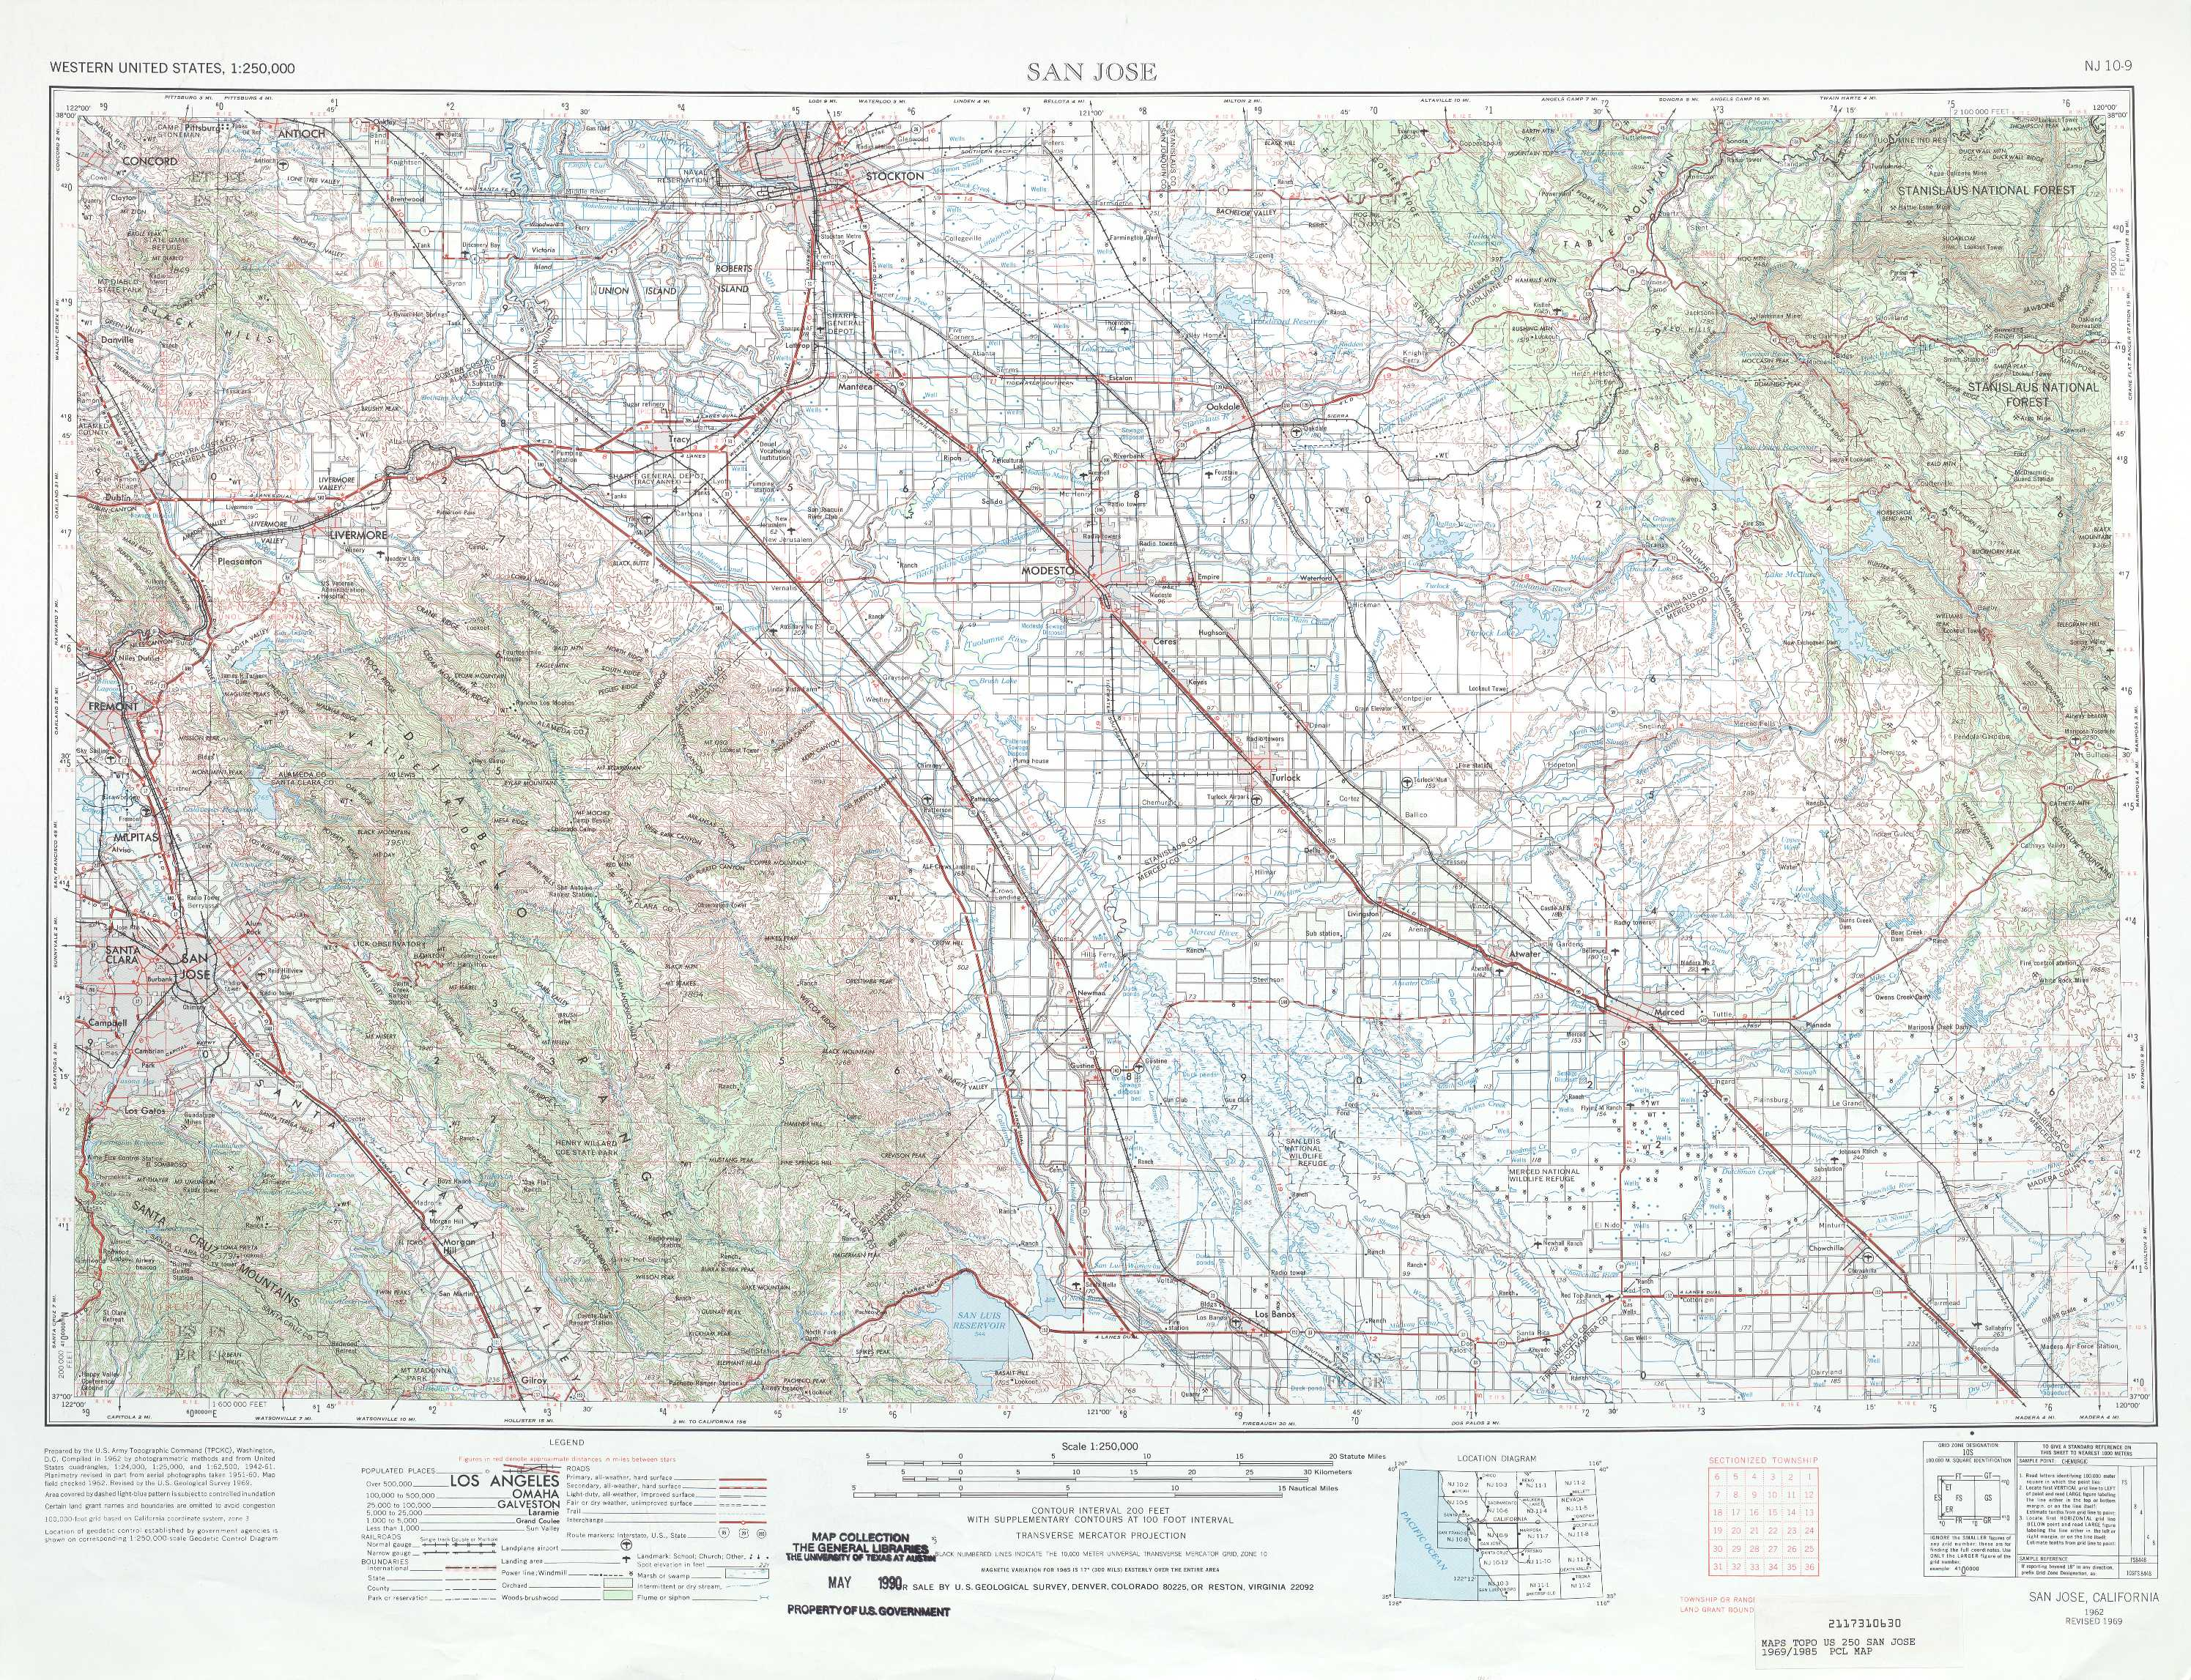 San Jose topographic maps CA  USGS Topo Quad 37120a1 at 1